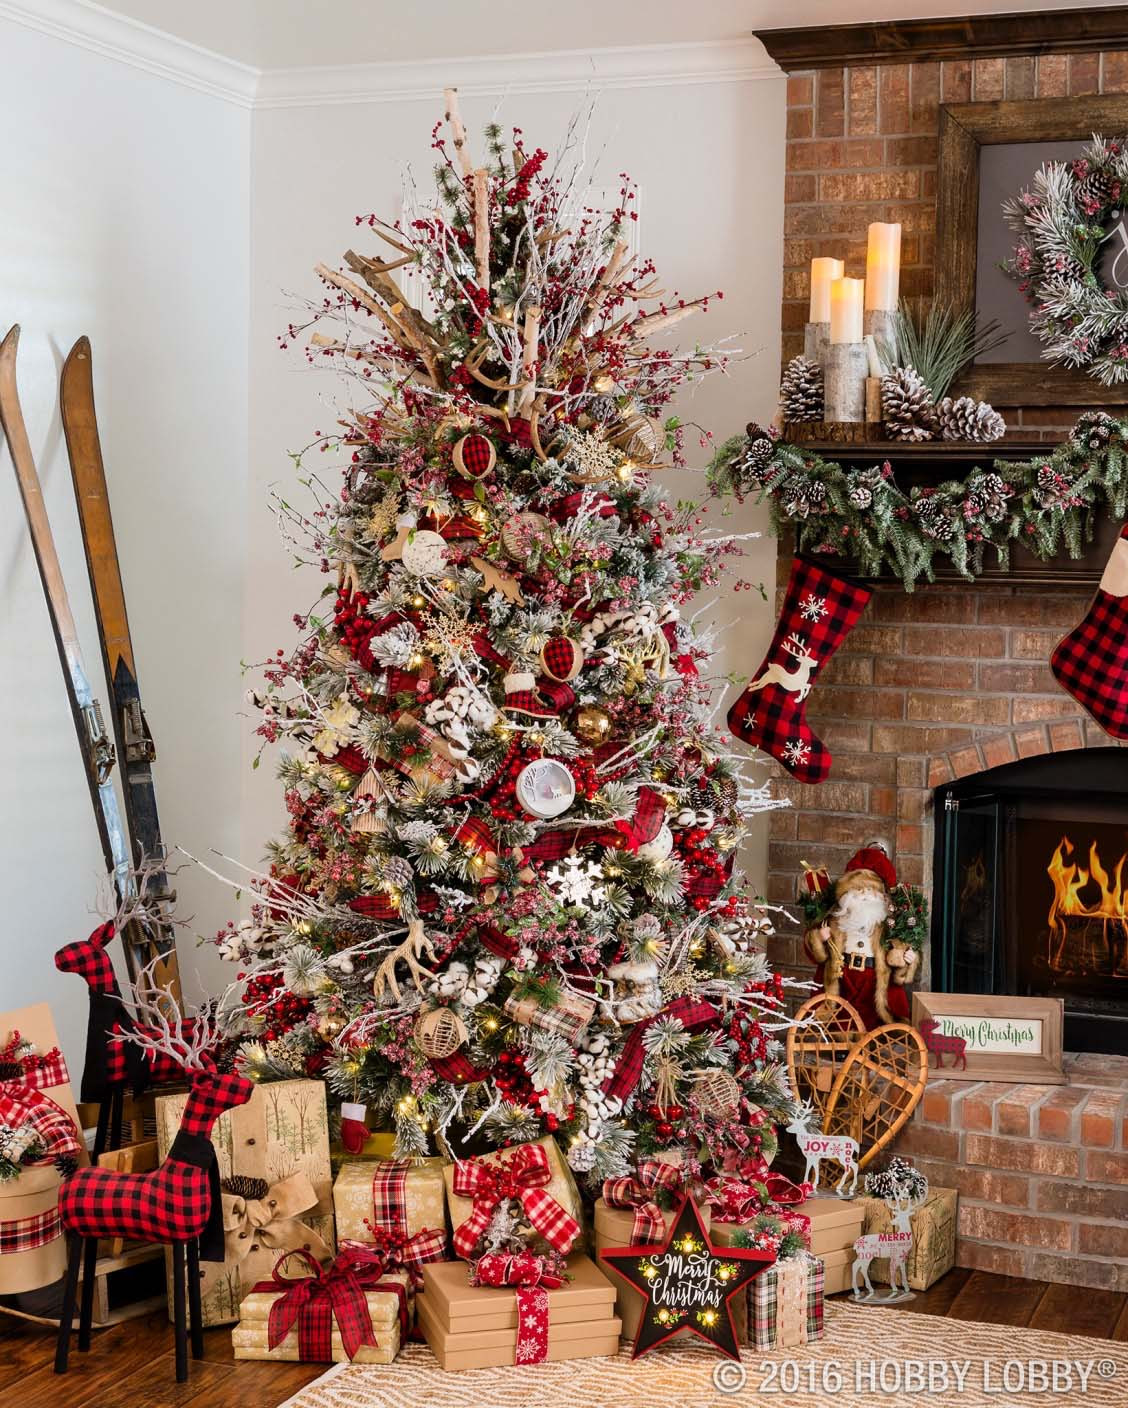 Christmas Decorators Fresh 30 Most Amazing Christmas Decorated Trees for some Holiday Of Christmas Decorators New 46 Beautiful Christmas Porch Decorating Ideas — Style Estate